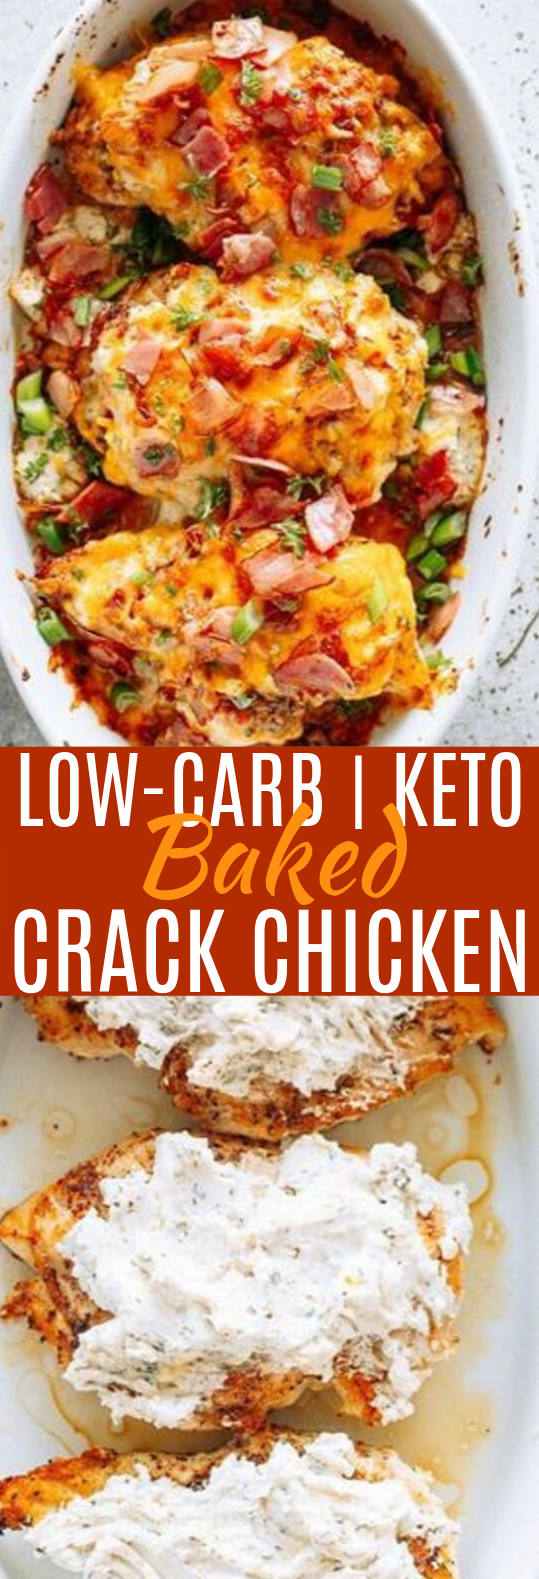 Baked Crack Chicken Breasts #keto #lowcarb